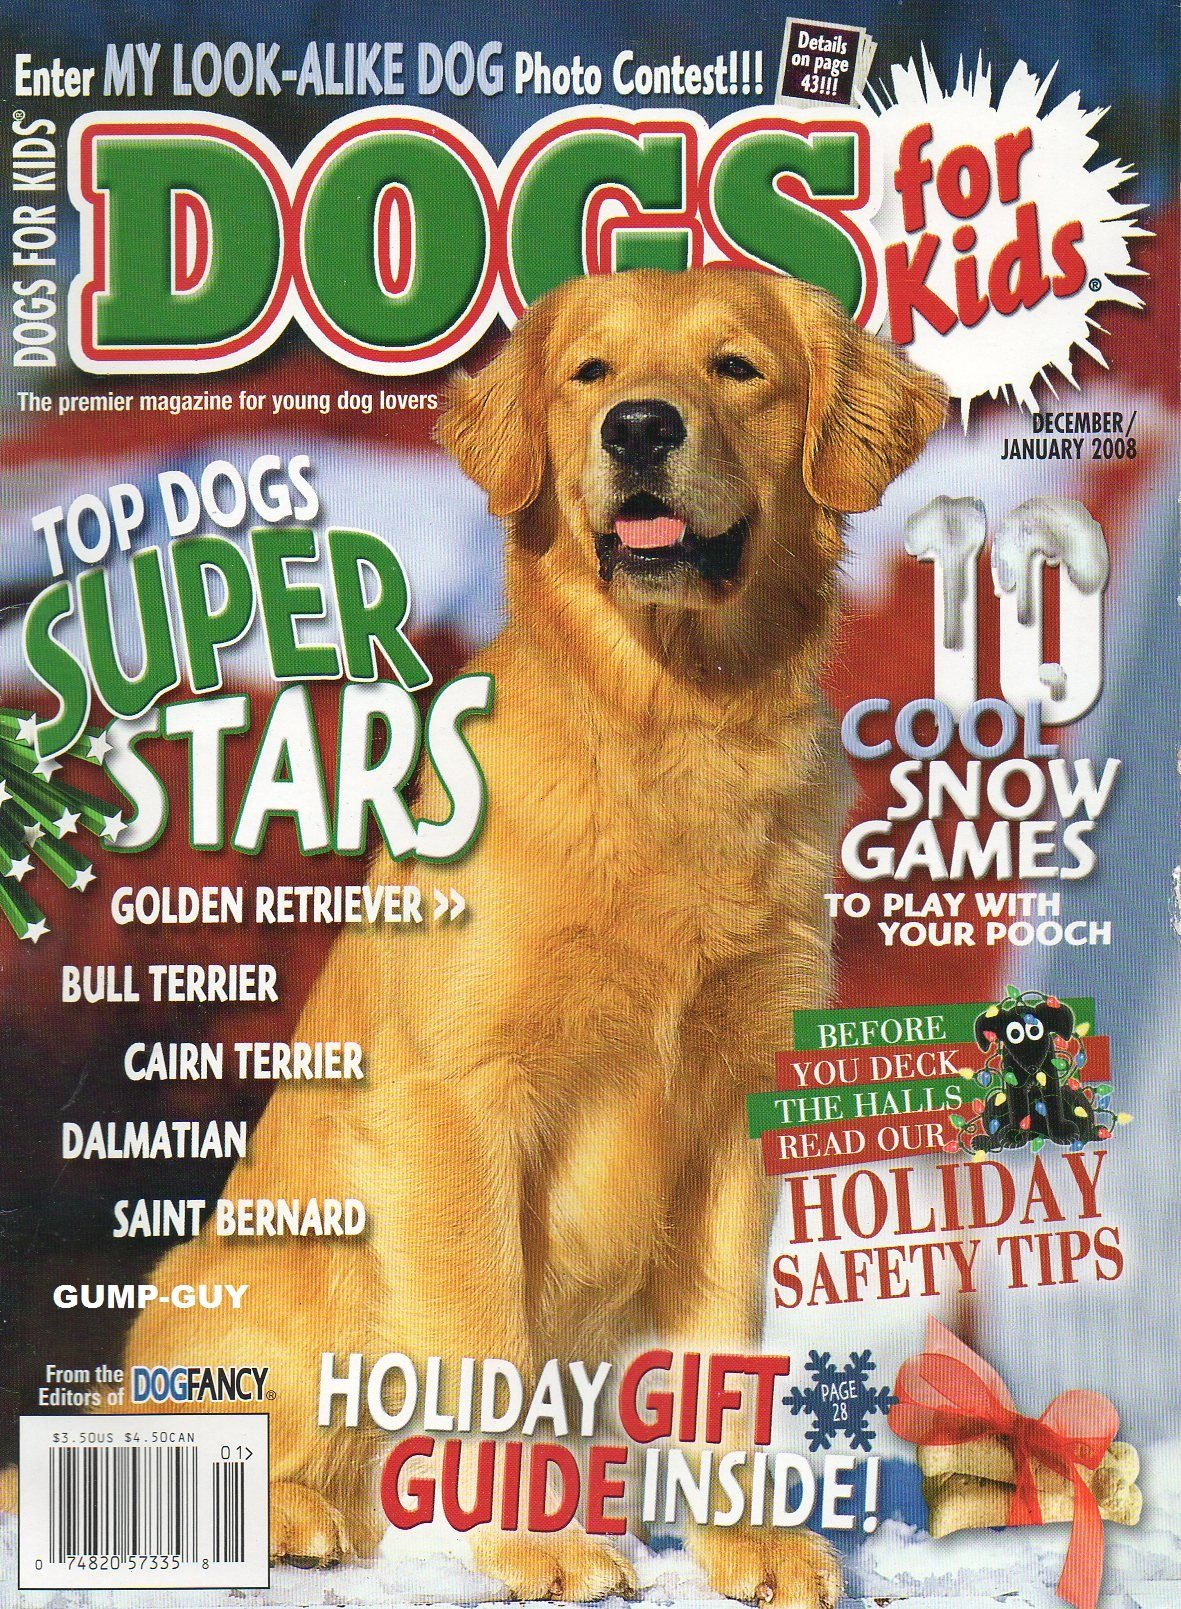 Dogs For Kids of Dog Fancy December 2007 January 2008 Premier Magazine For Young Dog Lovers HOLIDAY GIFT GUIDE INSIDE Holiday Safety Tips ebook